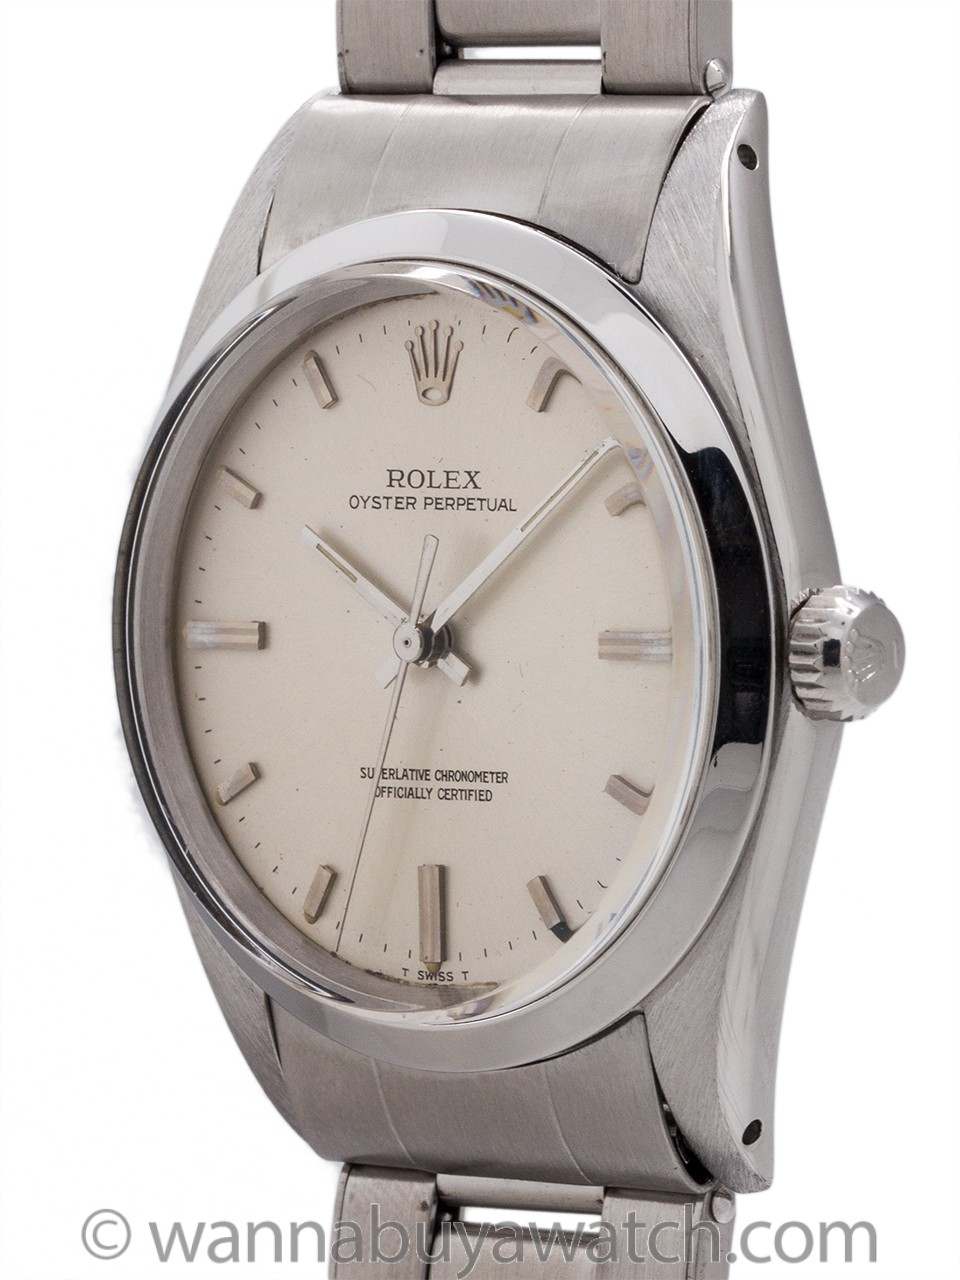 Rolex Oyster Perpetual ref 1018 Stainless Steel circa 1968